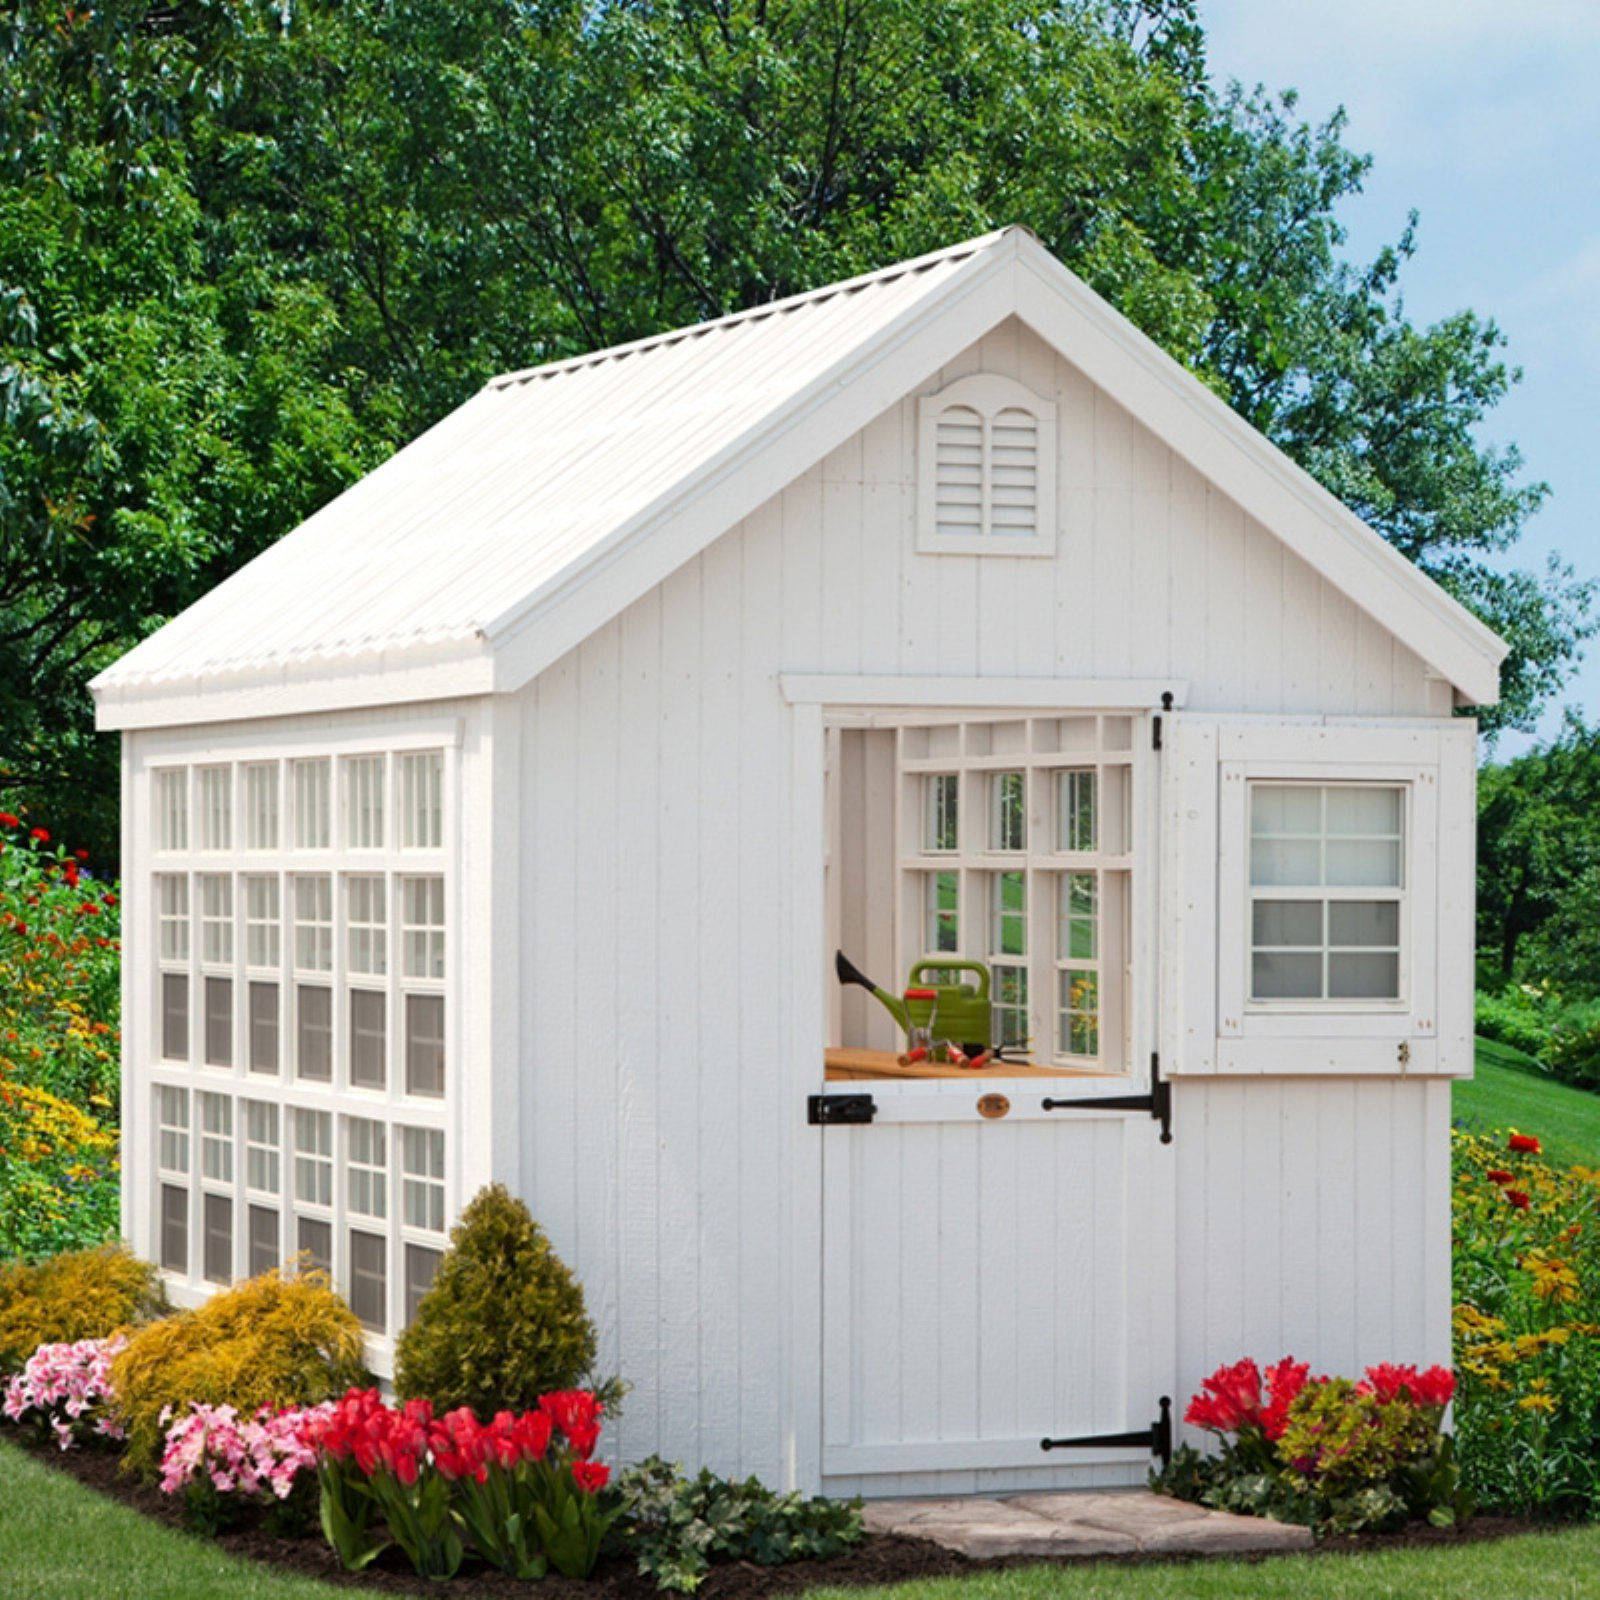 Little Cottage 8 x 12 ft. Colonial Gable Greenhouse with Optional Floor Kit by Little Cottage Co